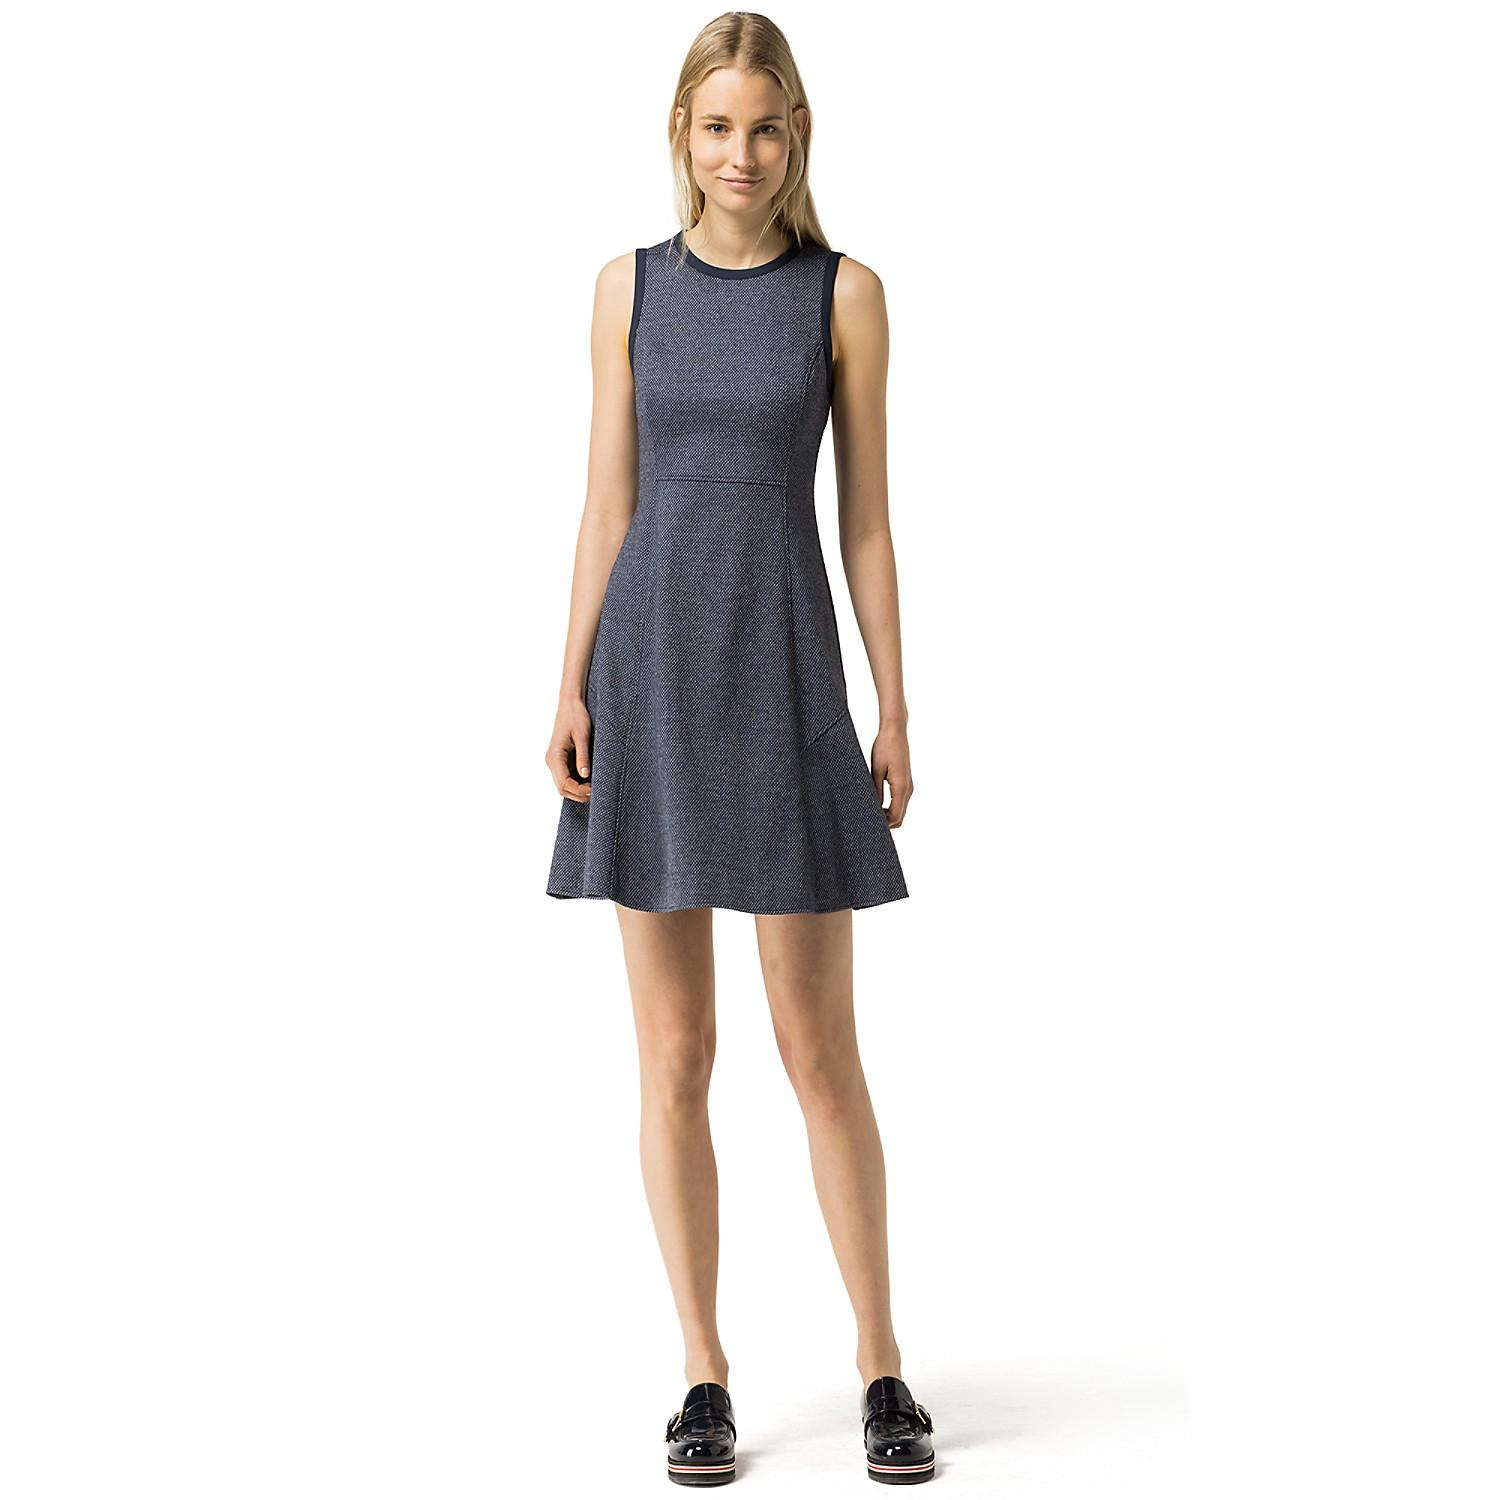 35% Off Fit and Flare Textured Dress